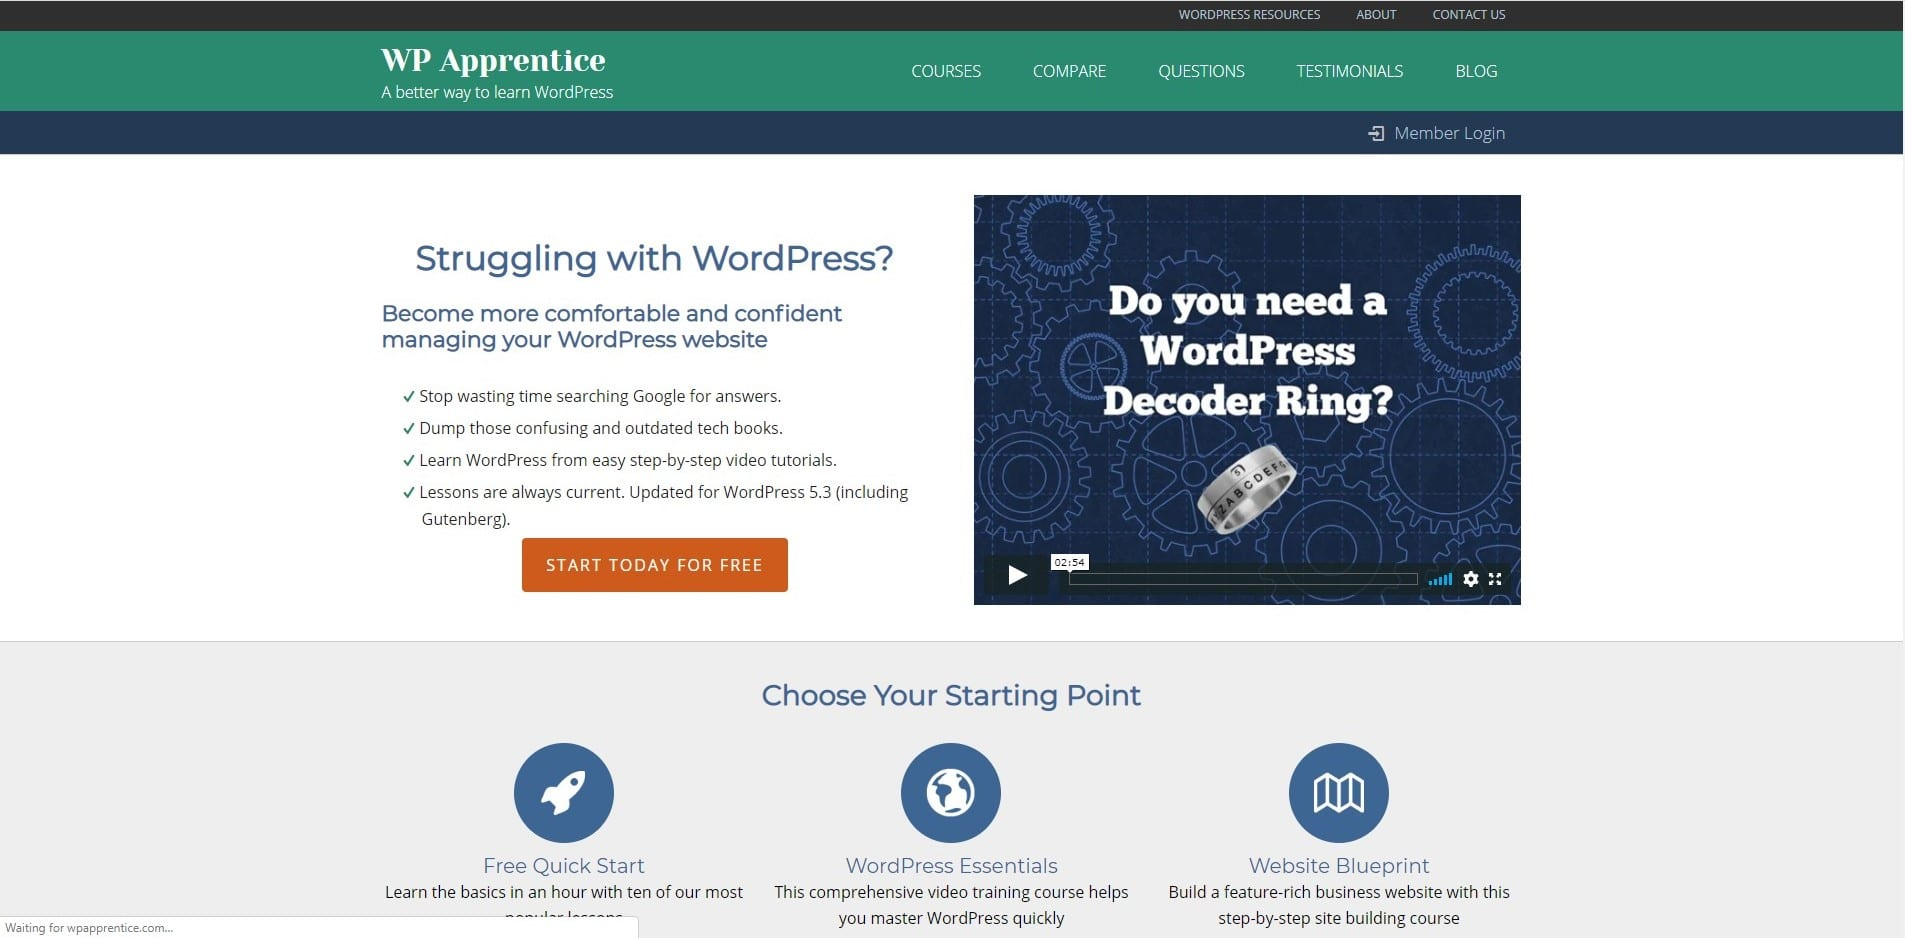 Learn WordPress with WP apprentice